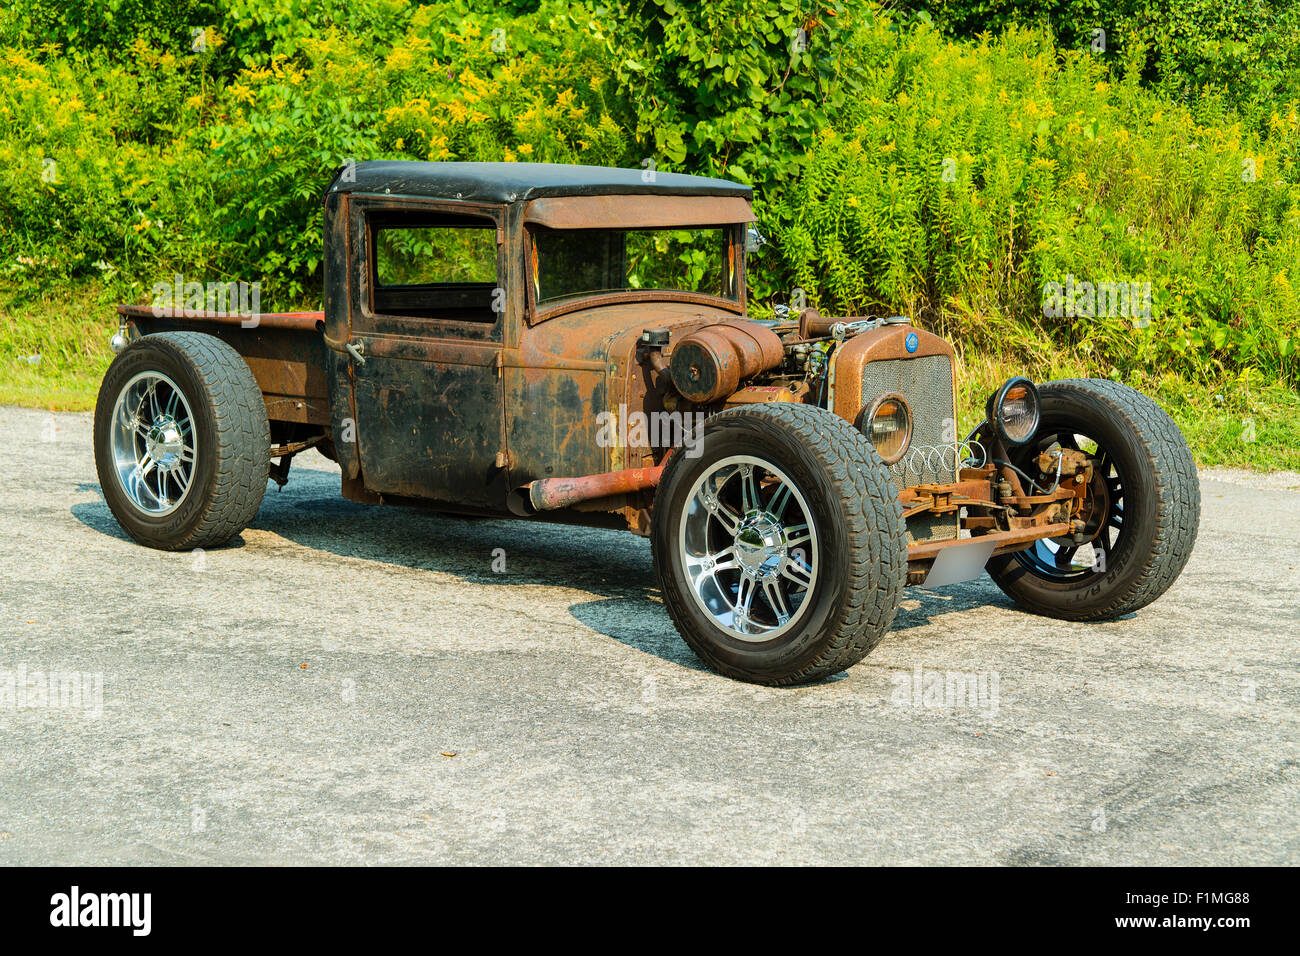 1940 1930 Stock Photos Images Alamy Plymouth Wiring Diagram Sedan Rat Rod On Pavement Image